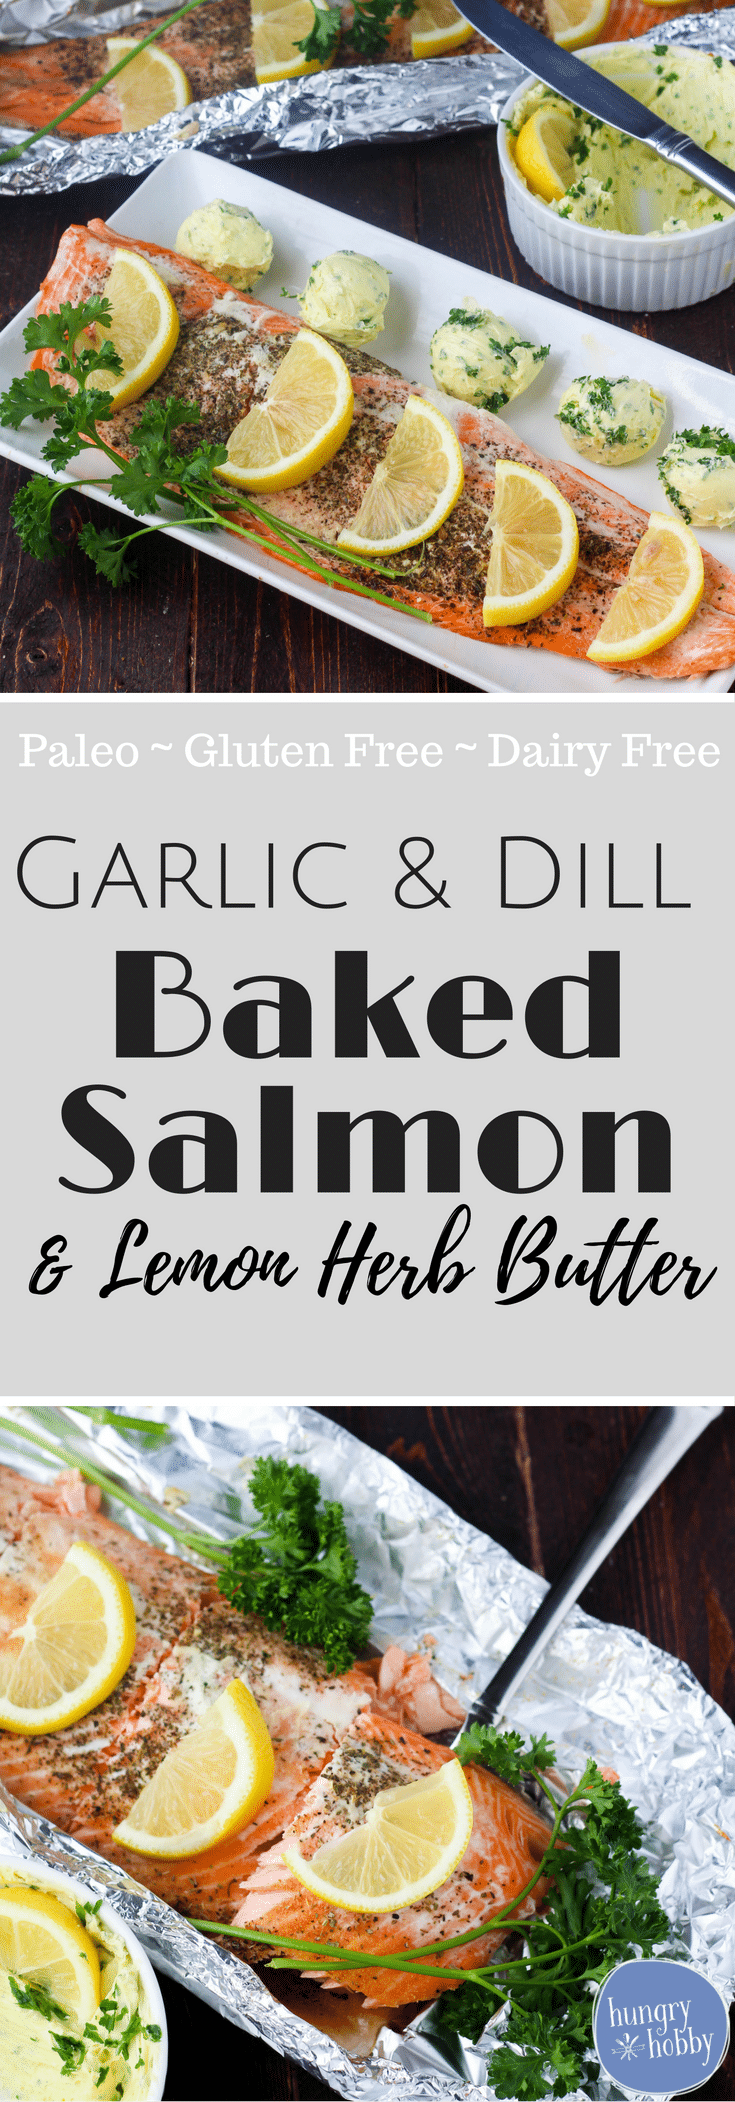 Garlic and Dill Baked Salmon with Lemon Herb Butter - a super easy paleo, gluten free, dairy free healthy baked salmon recipe